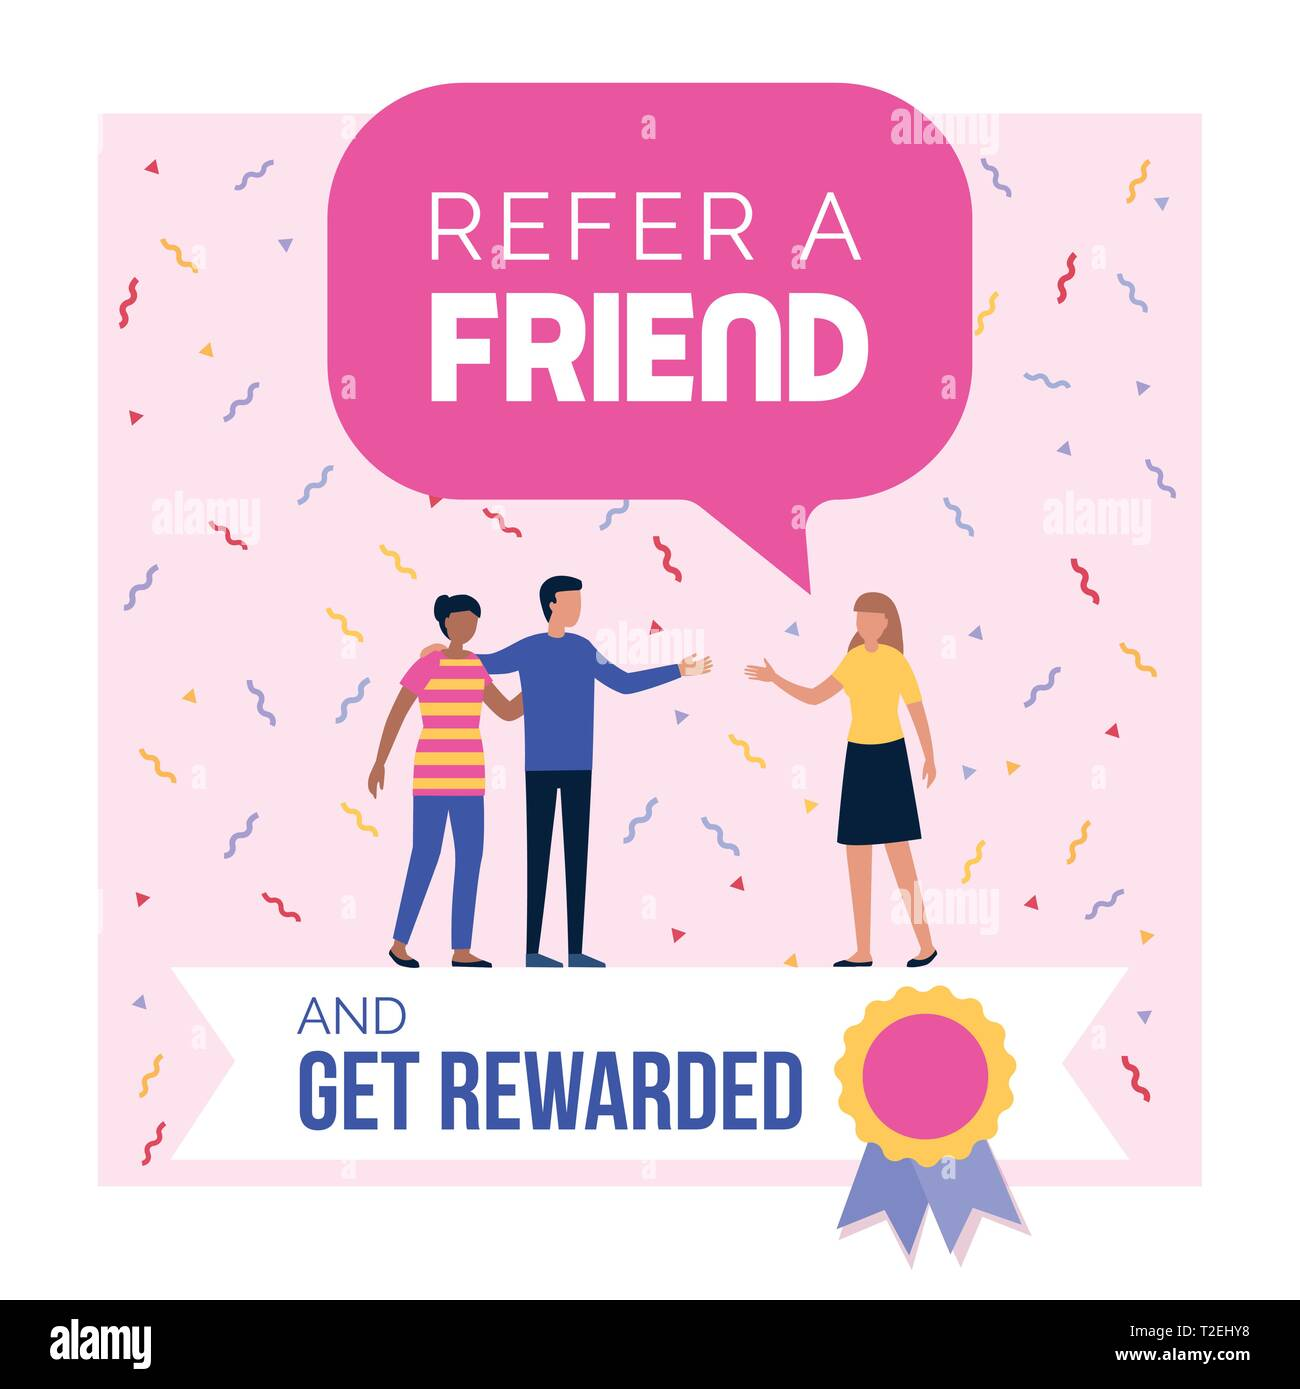 Refer a friend and get rewarded promotional program advertisement and social media post design - Stock Image